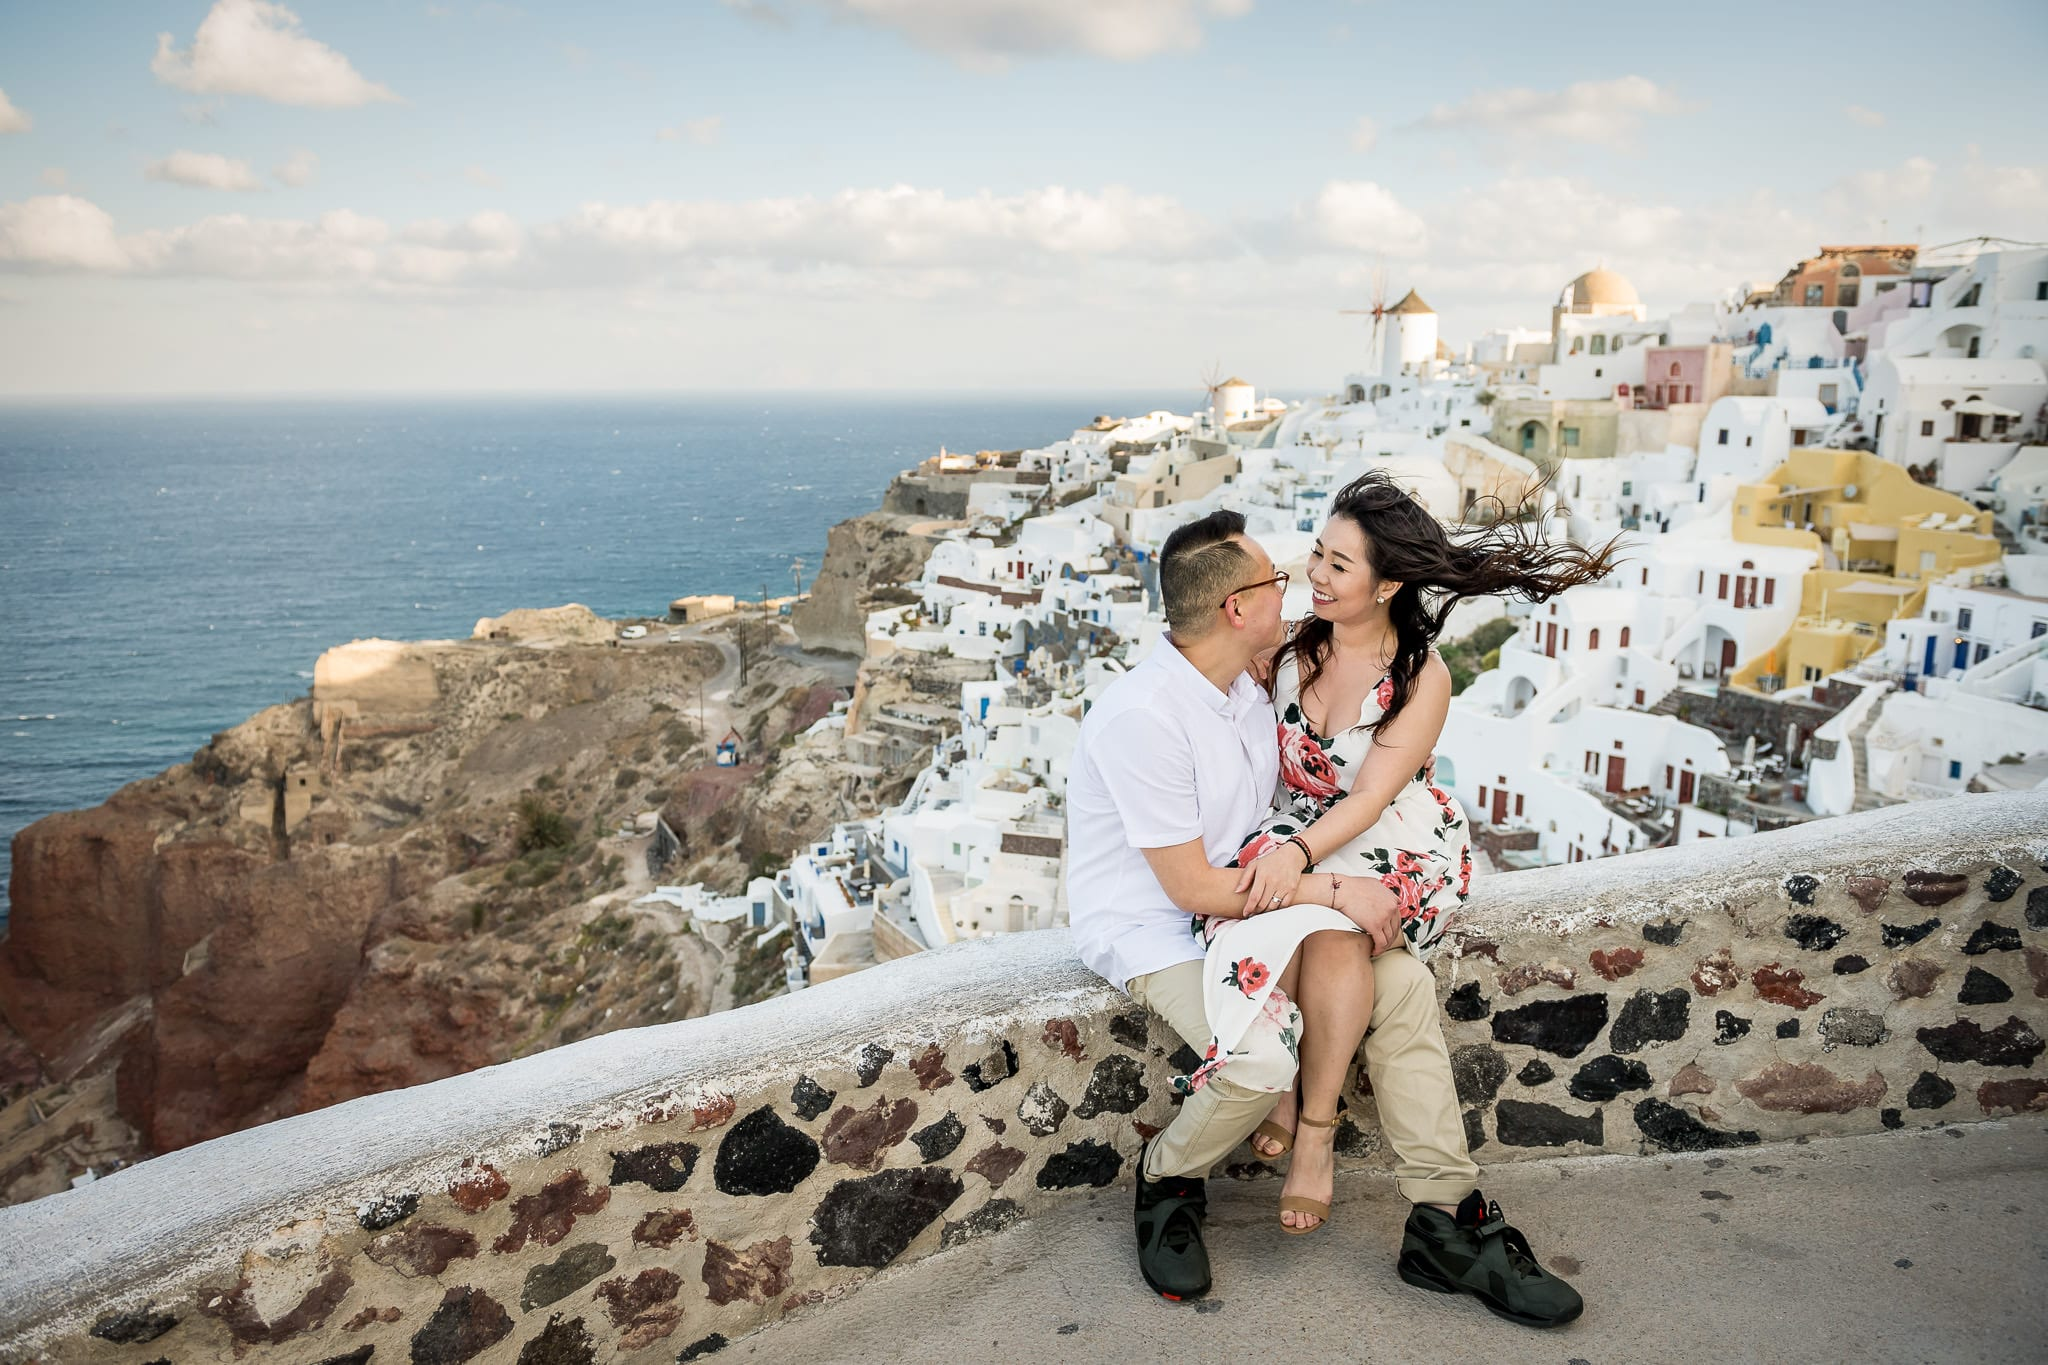 Newlywed bride sitting on her new husbands lap, along a stone wall of the Oia Castle, high above the colorful Santorini island village of Oia, with the iconic windmill in the background on their Honeymoon